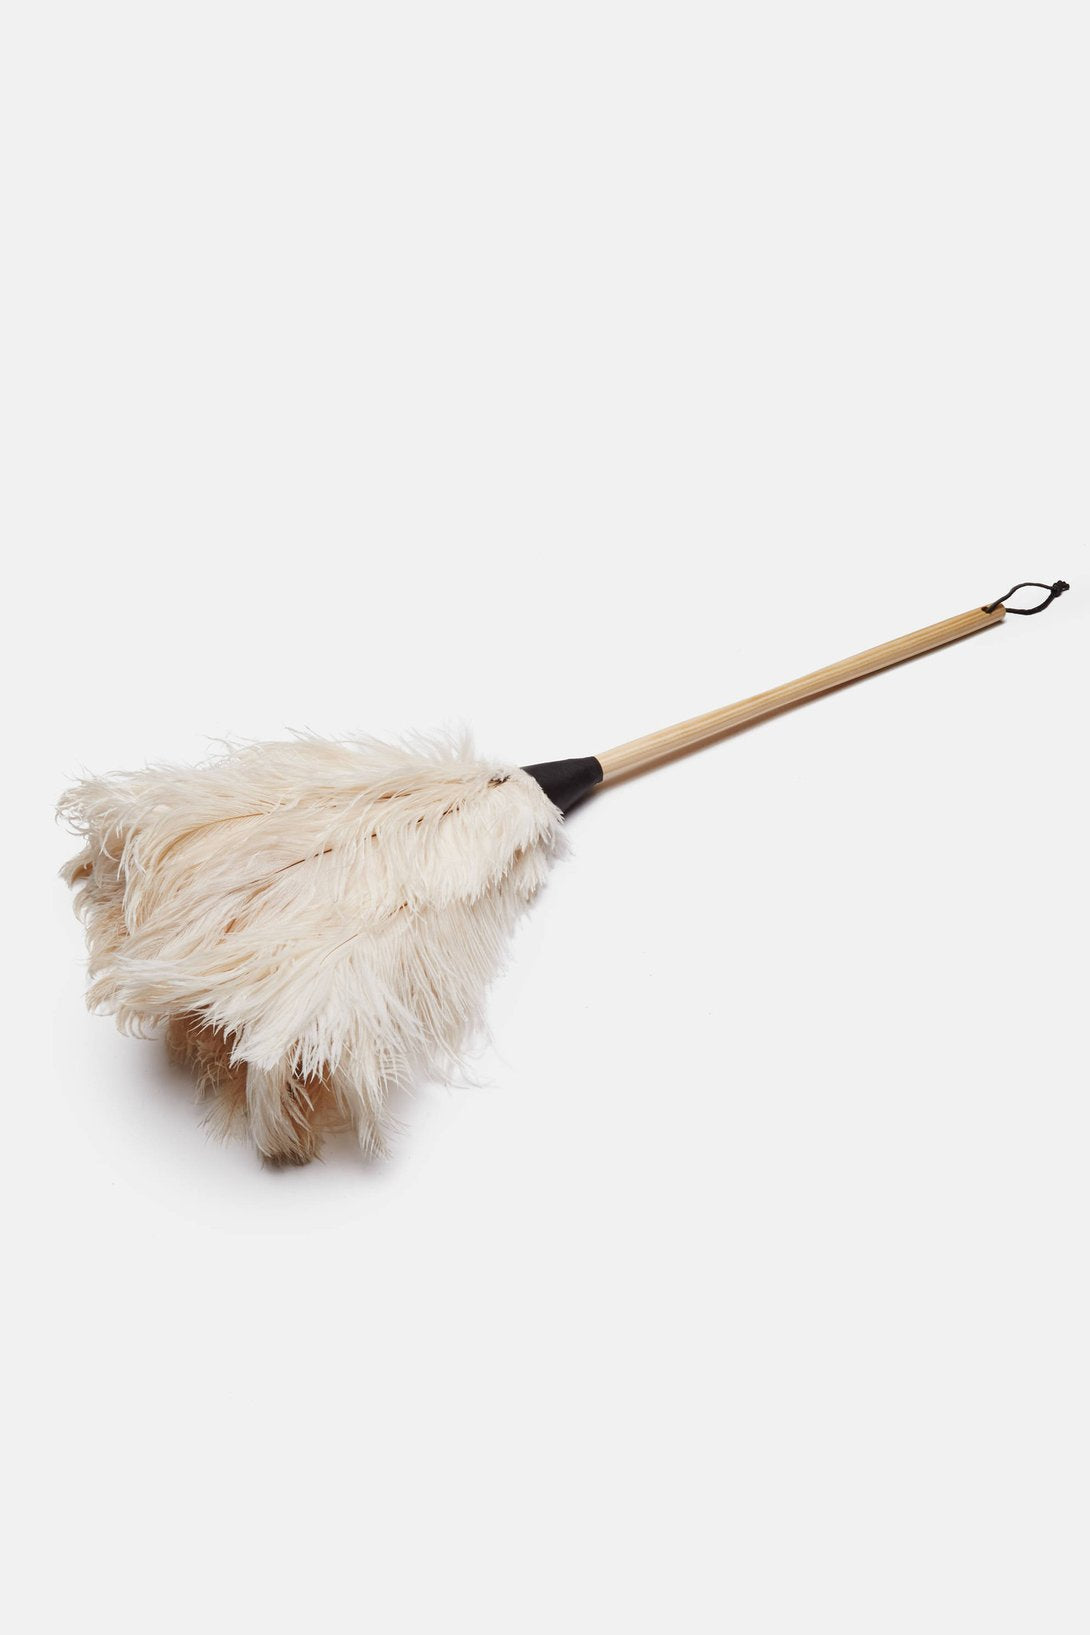 White Ostrich Feather Duster 35cm